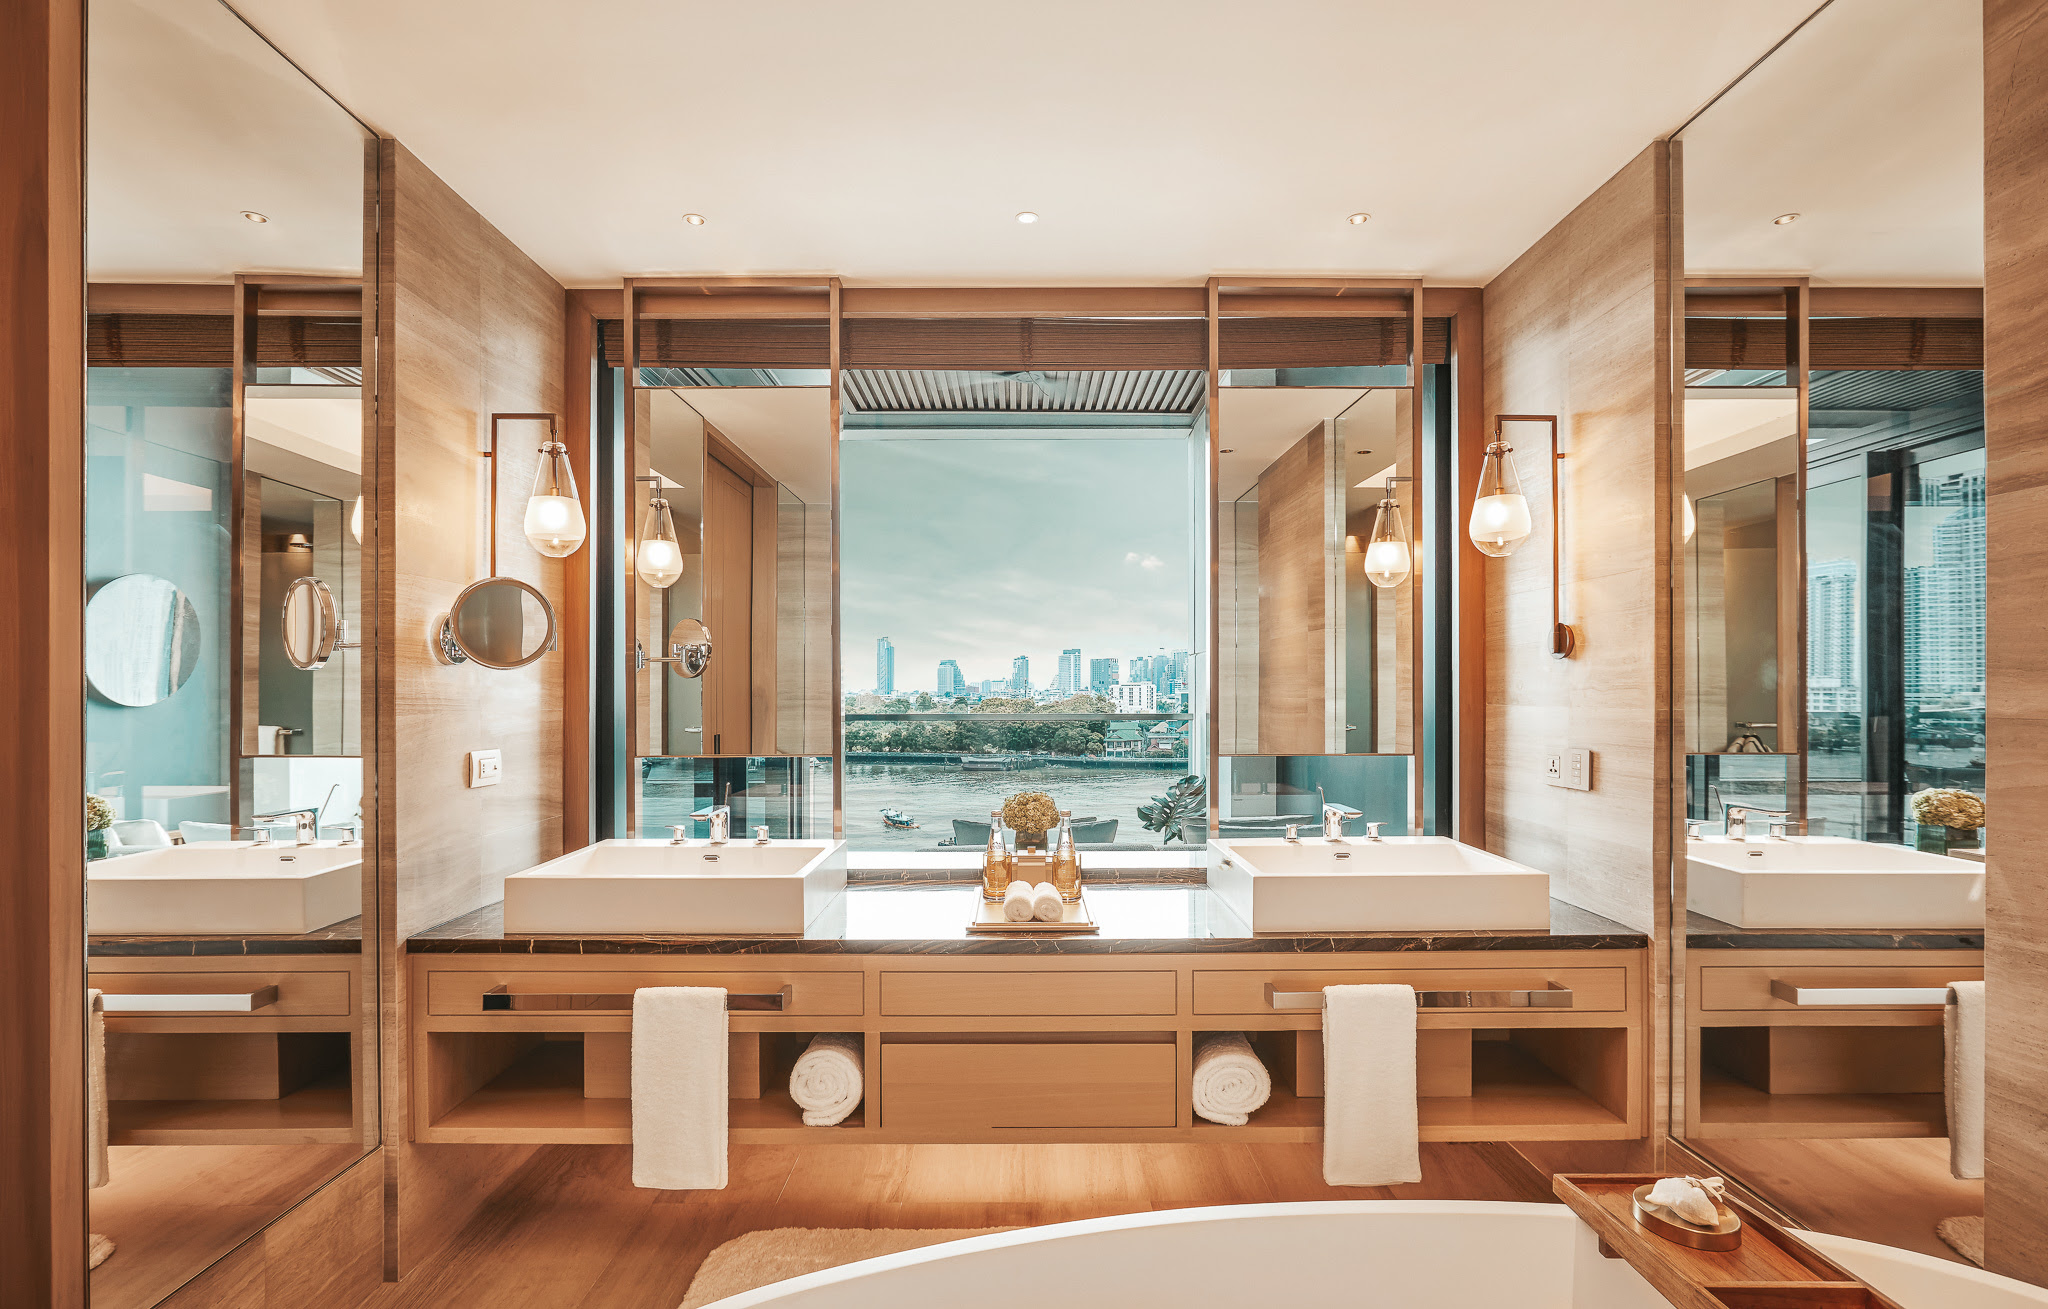 https://highend-traveller.com/capella-bangkok-opens-for-reservations-ahead-of-its-launch-on-the-chao-phraya-river-on-october-1st-2020/